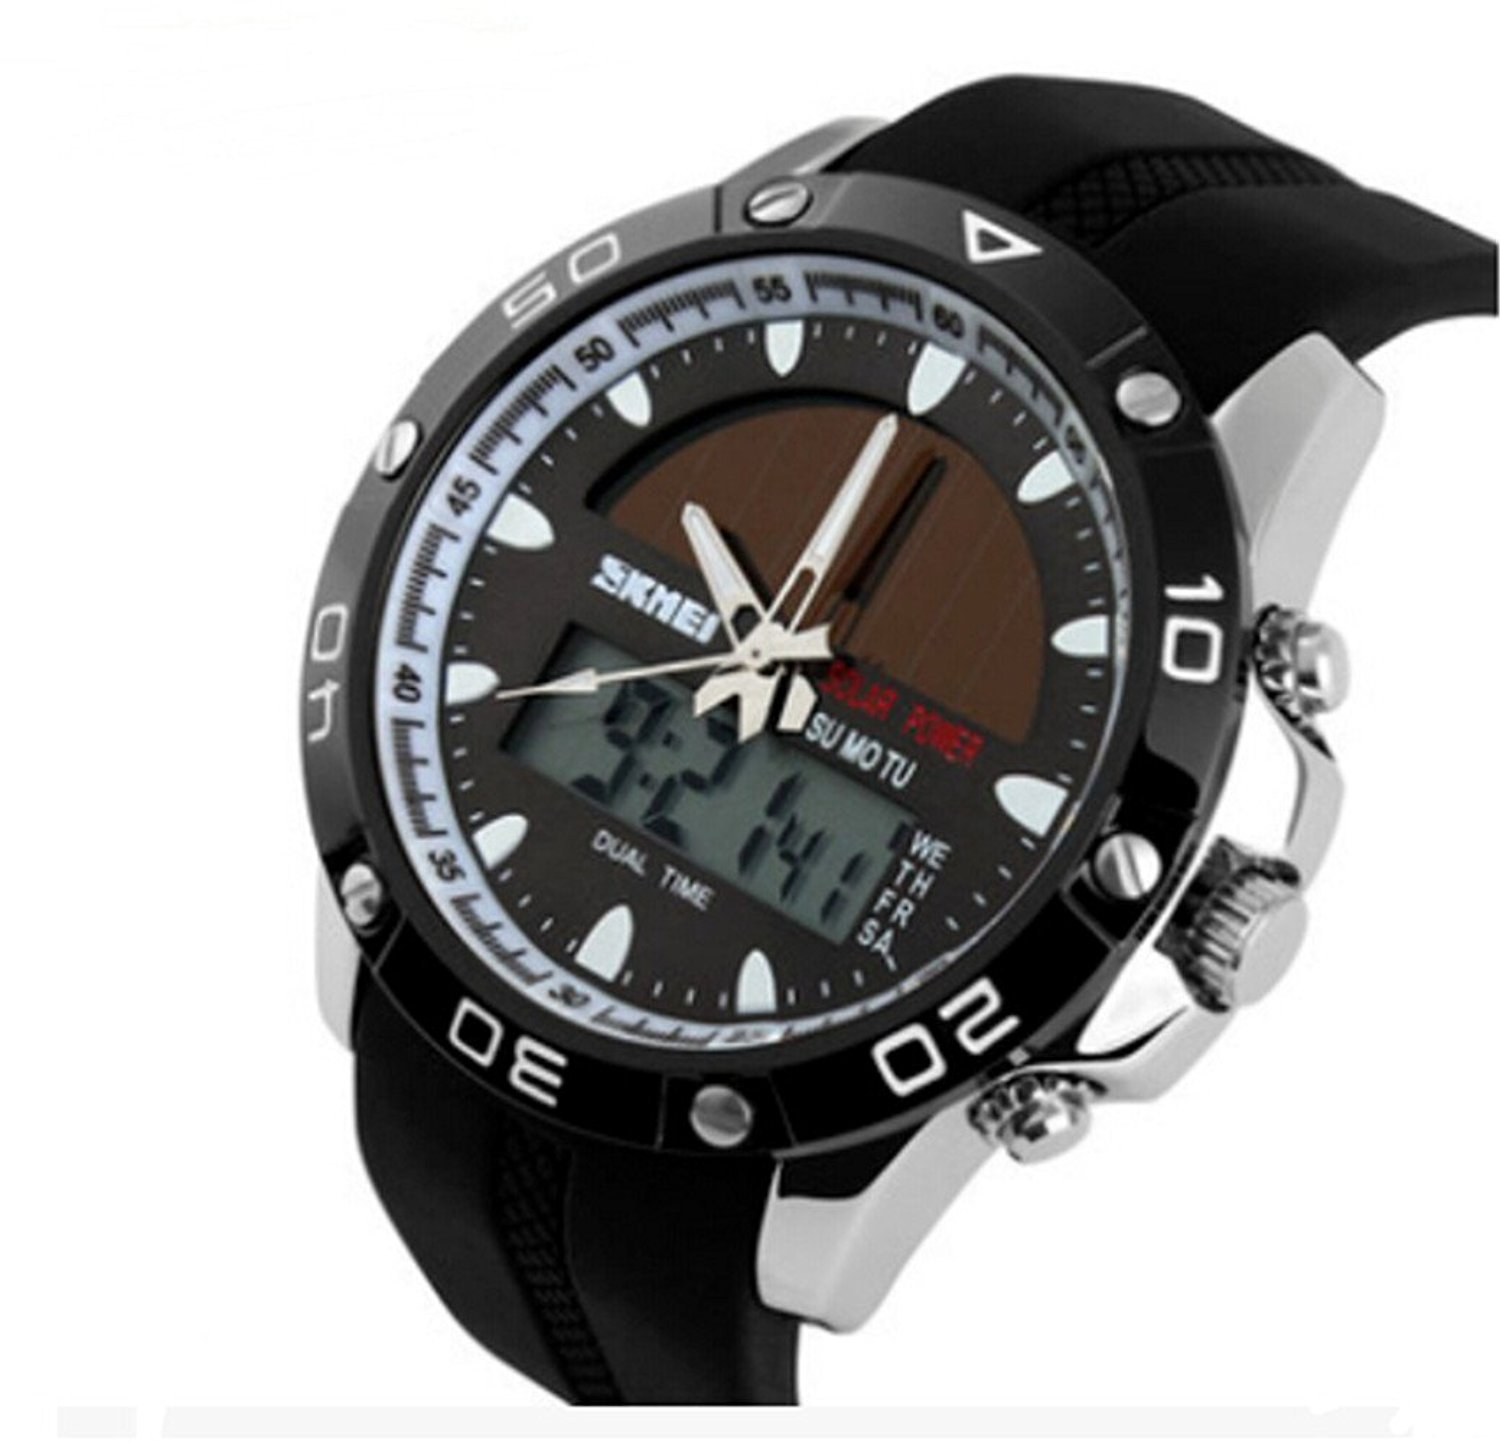 gents com solar powered watchshop g controlled alarm watch casio power radio watches mens chronograph awg waveceptor shock